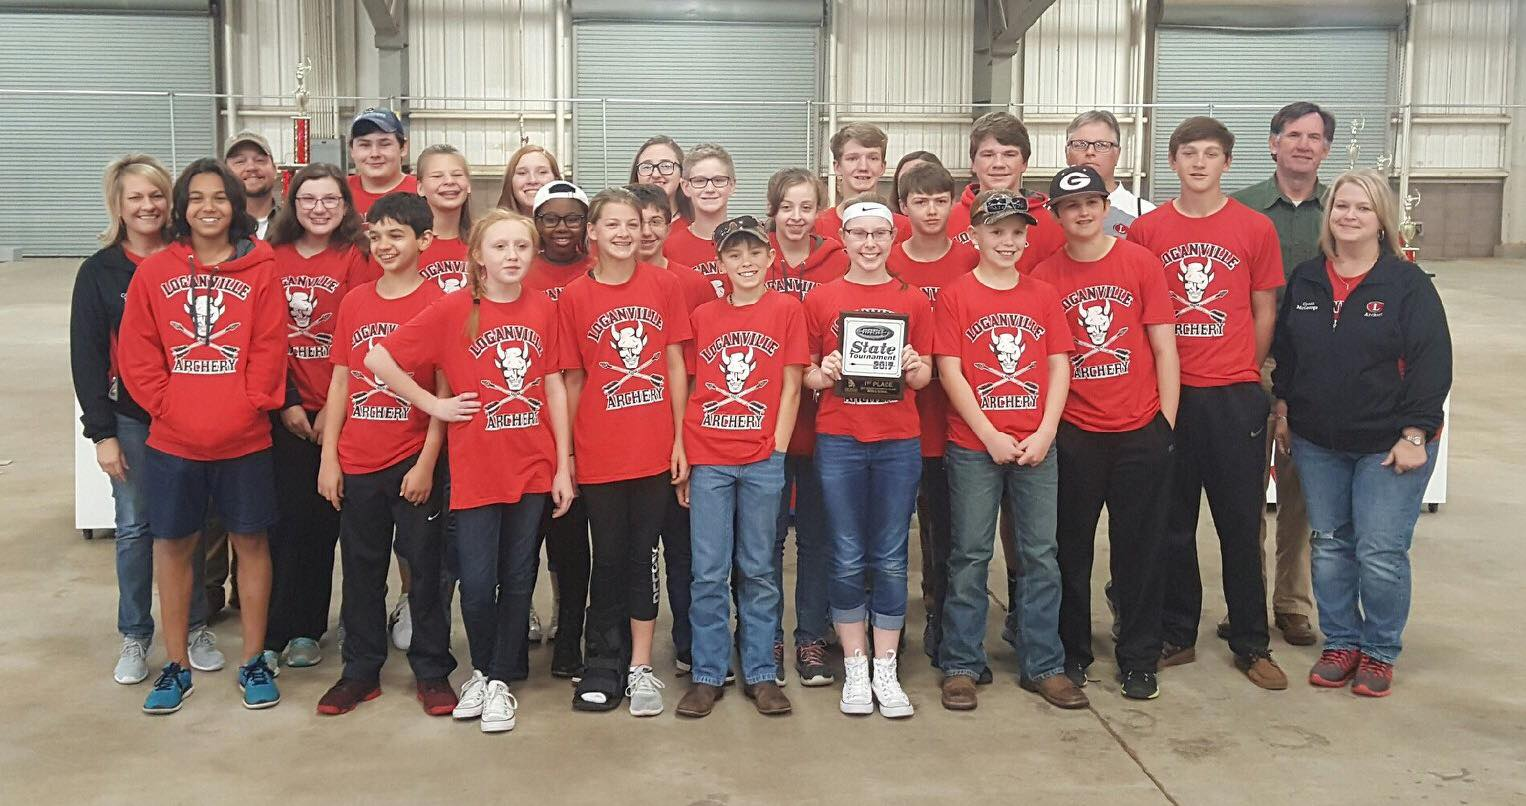 LMS Archery Team